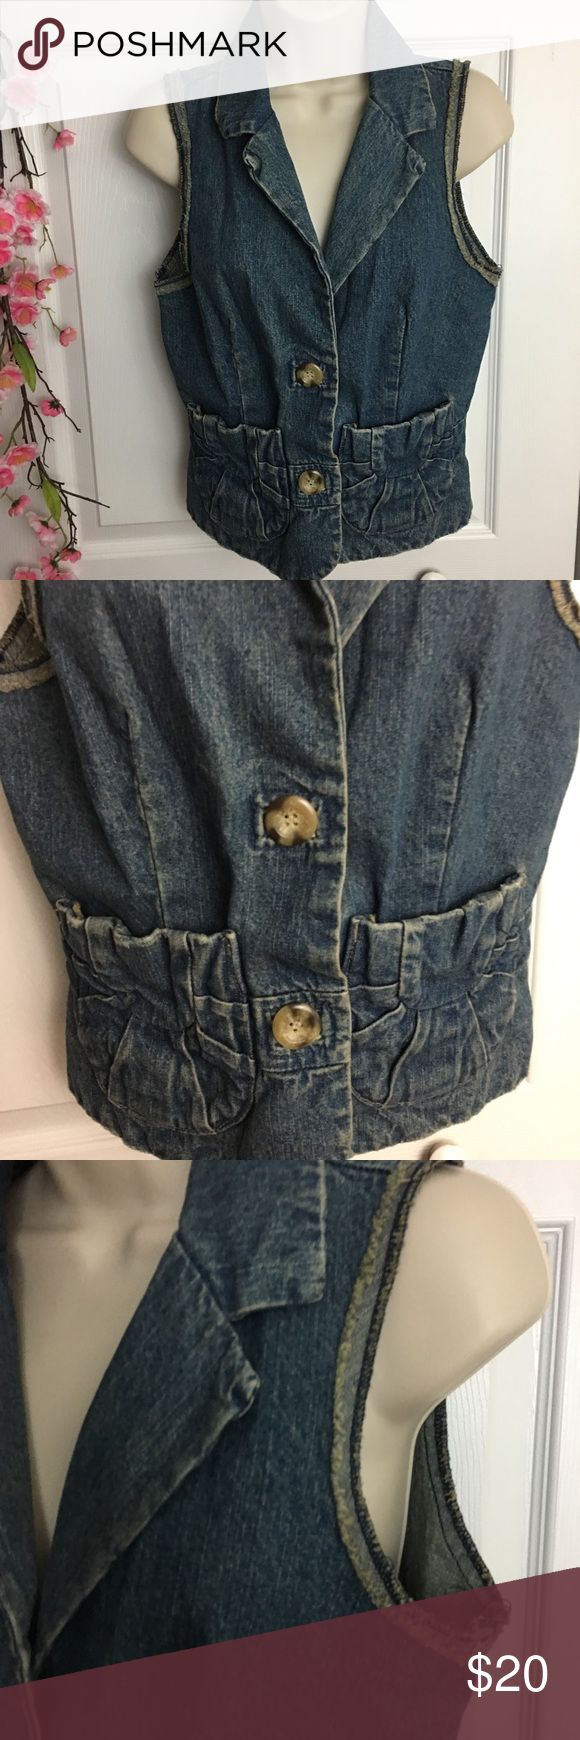 American Rag Denim Vest Cute vest! The hems have browning/yellowing but that is just the style. Great condition. No marks or stains. American Rag Jackets & Coats Vests